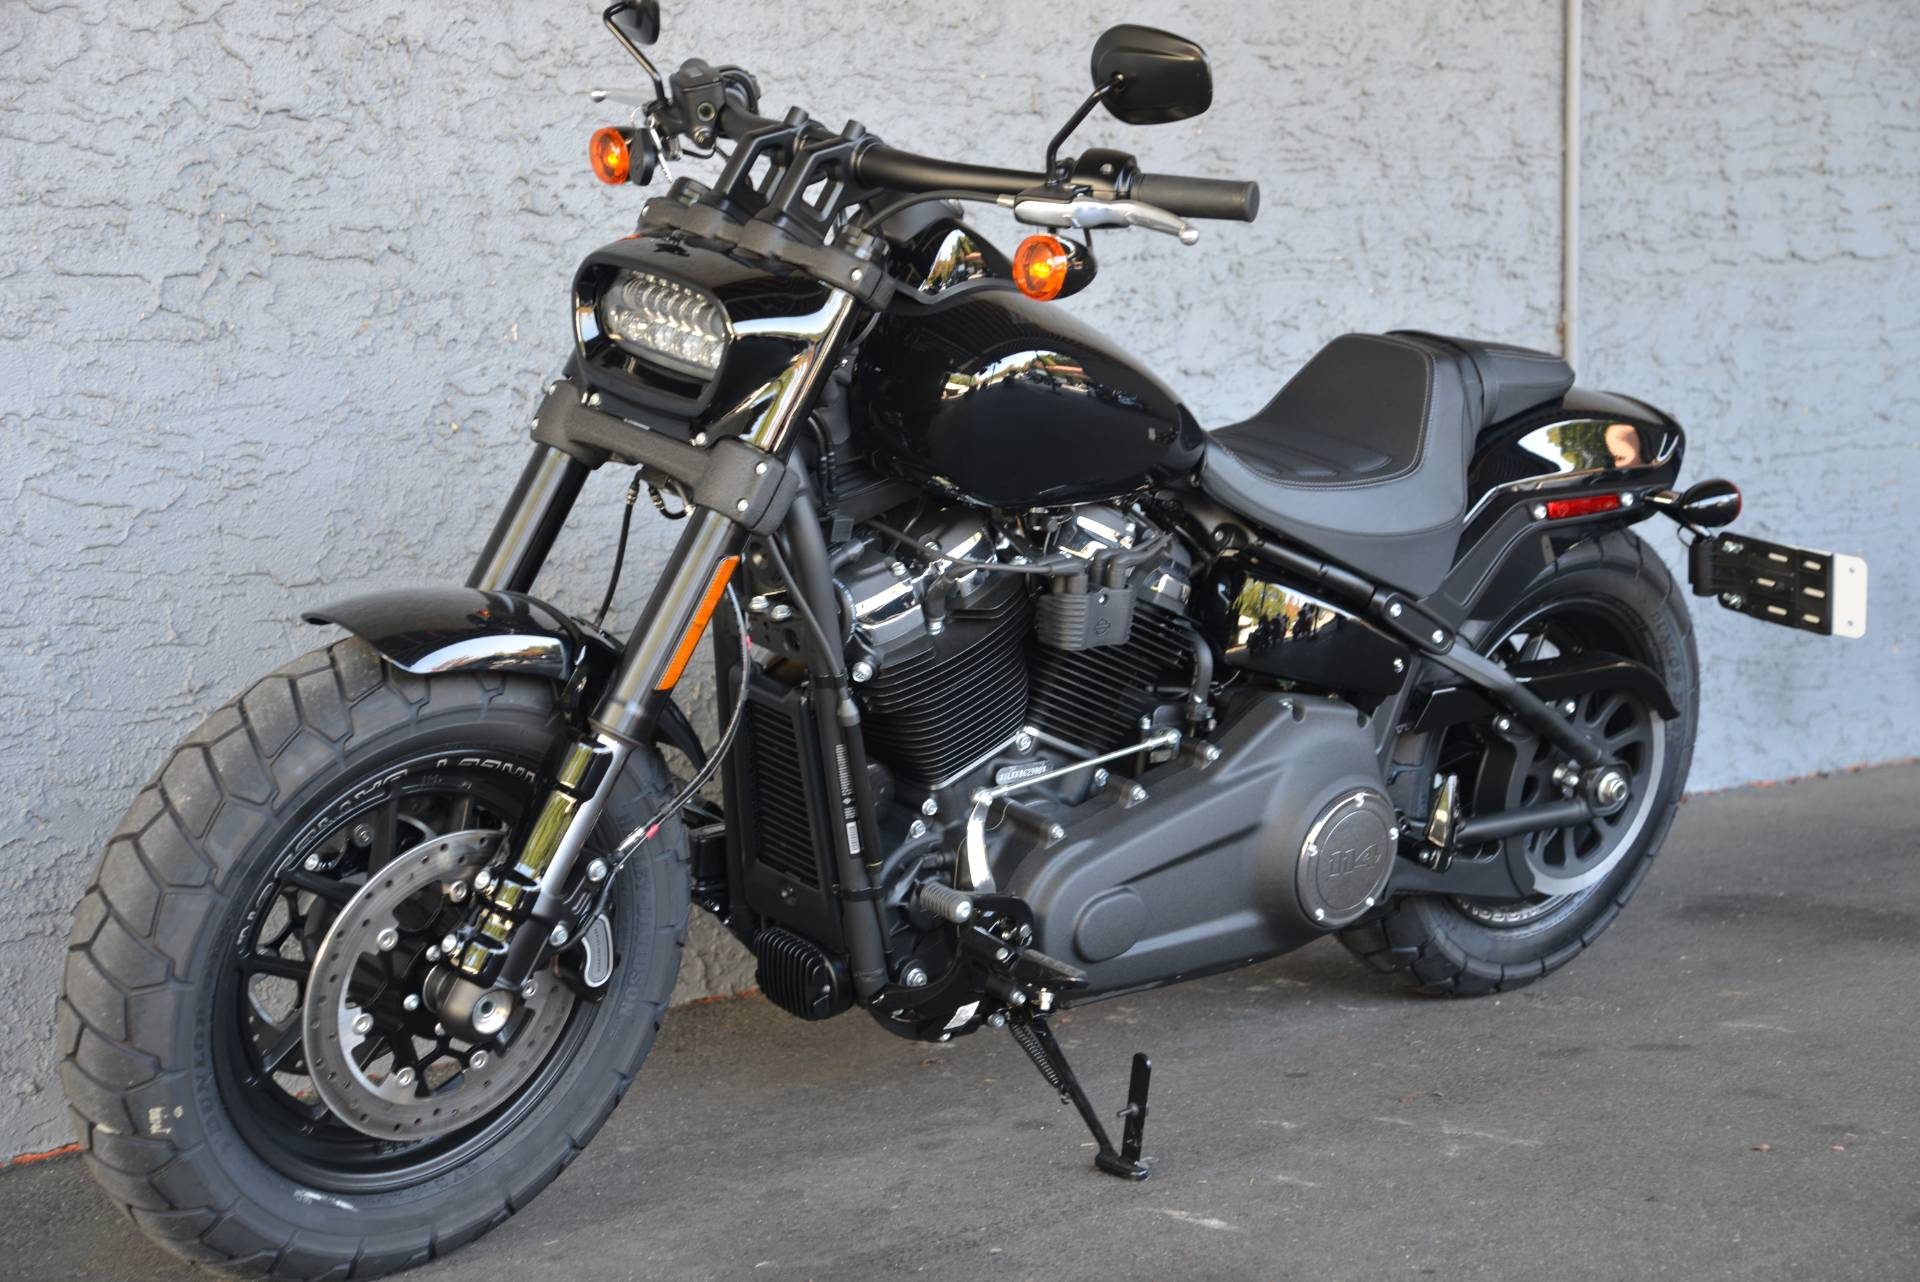 2019 Harley-Davidson FATBOB S in Lakewood, New Jersey - Photo 12